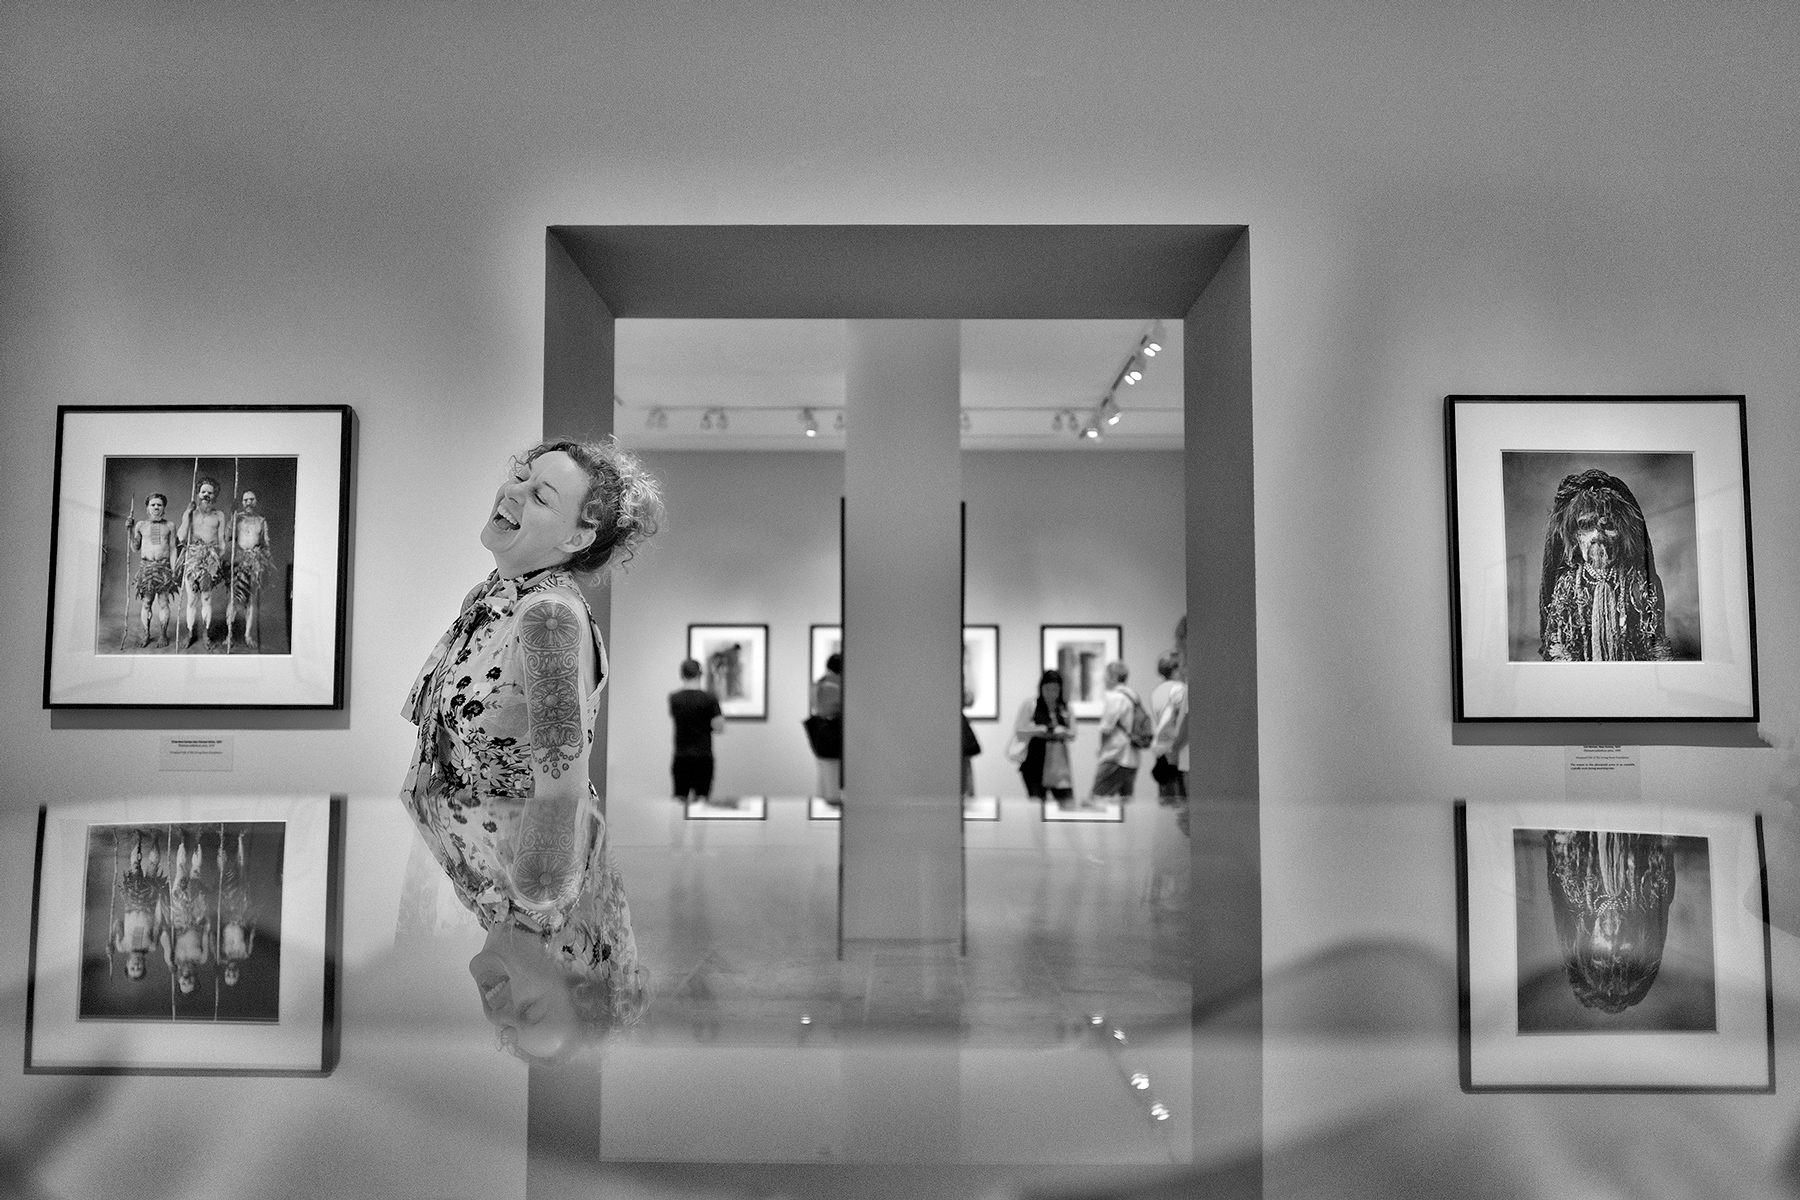 William-Bullard_Pictures-at-an-Exhibition2_Irving-Penn-#3.jpg